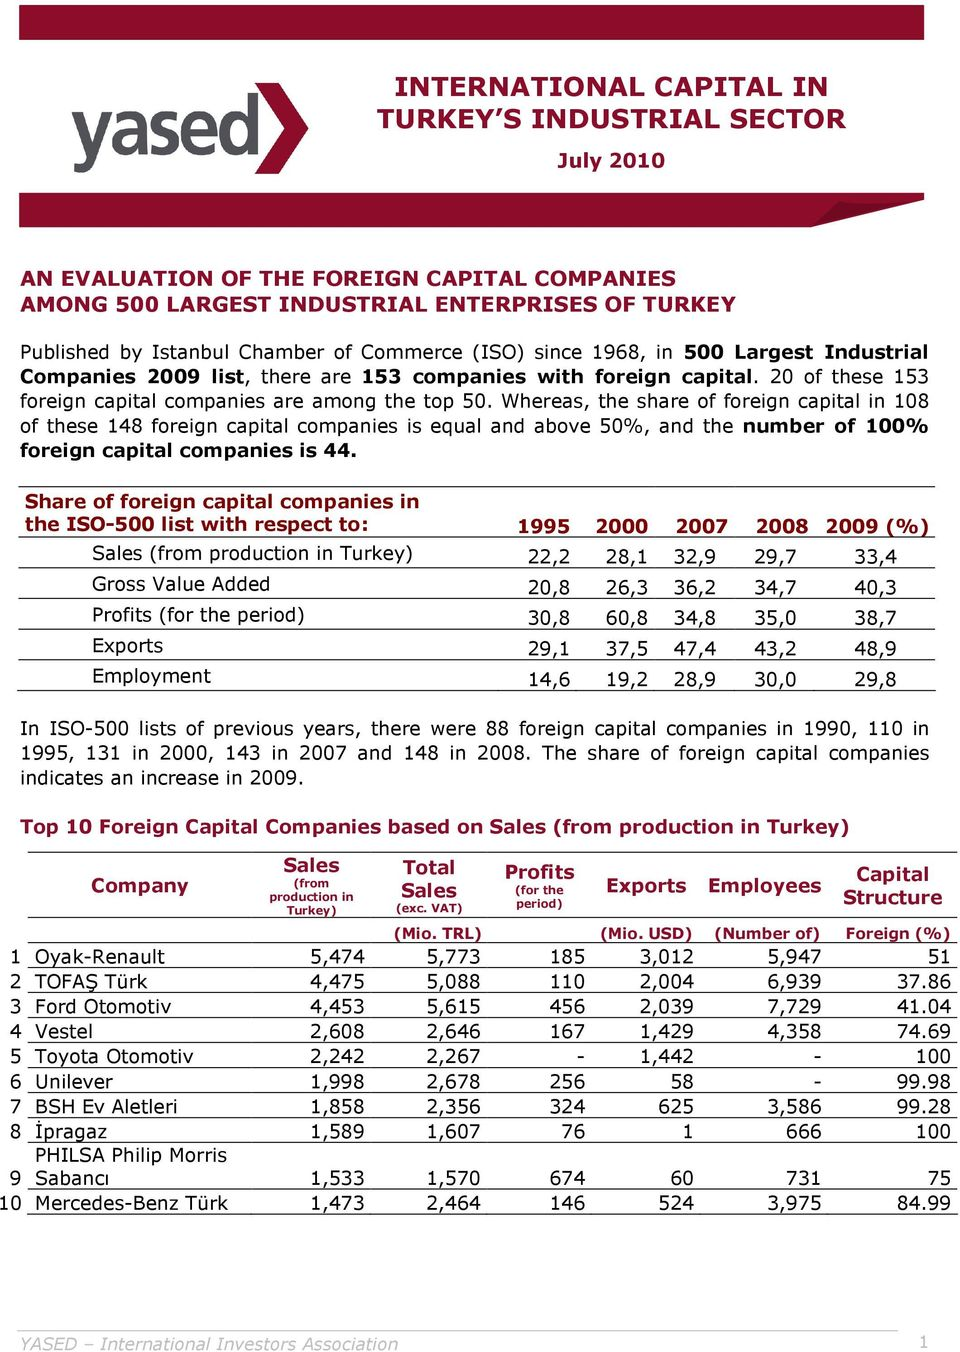 Whereas, the share of foreign capital in 108 of these 148 foreign capital companies is equal and above 50%, and the number of 100% foreign capital companies is 44.